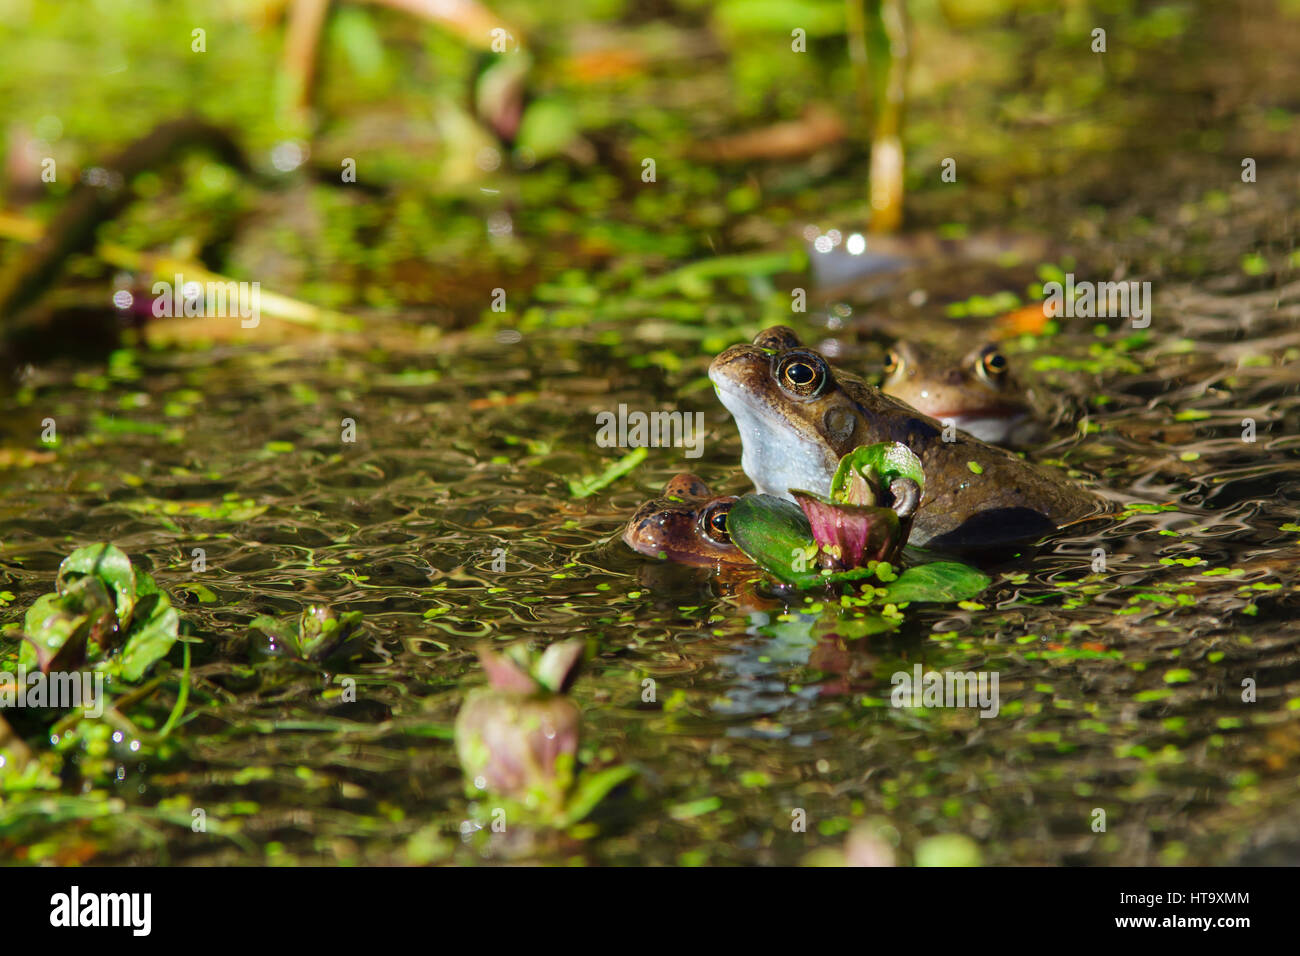 Wild common frogs (Rana temporaria) mating surrounded by frog spawn in a pond - Stock Image